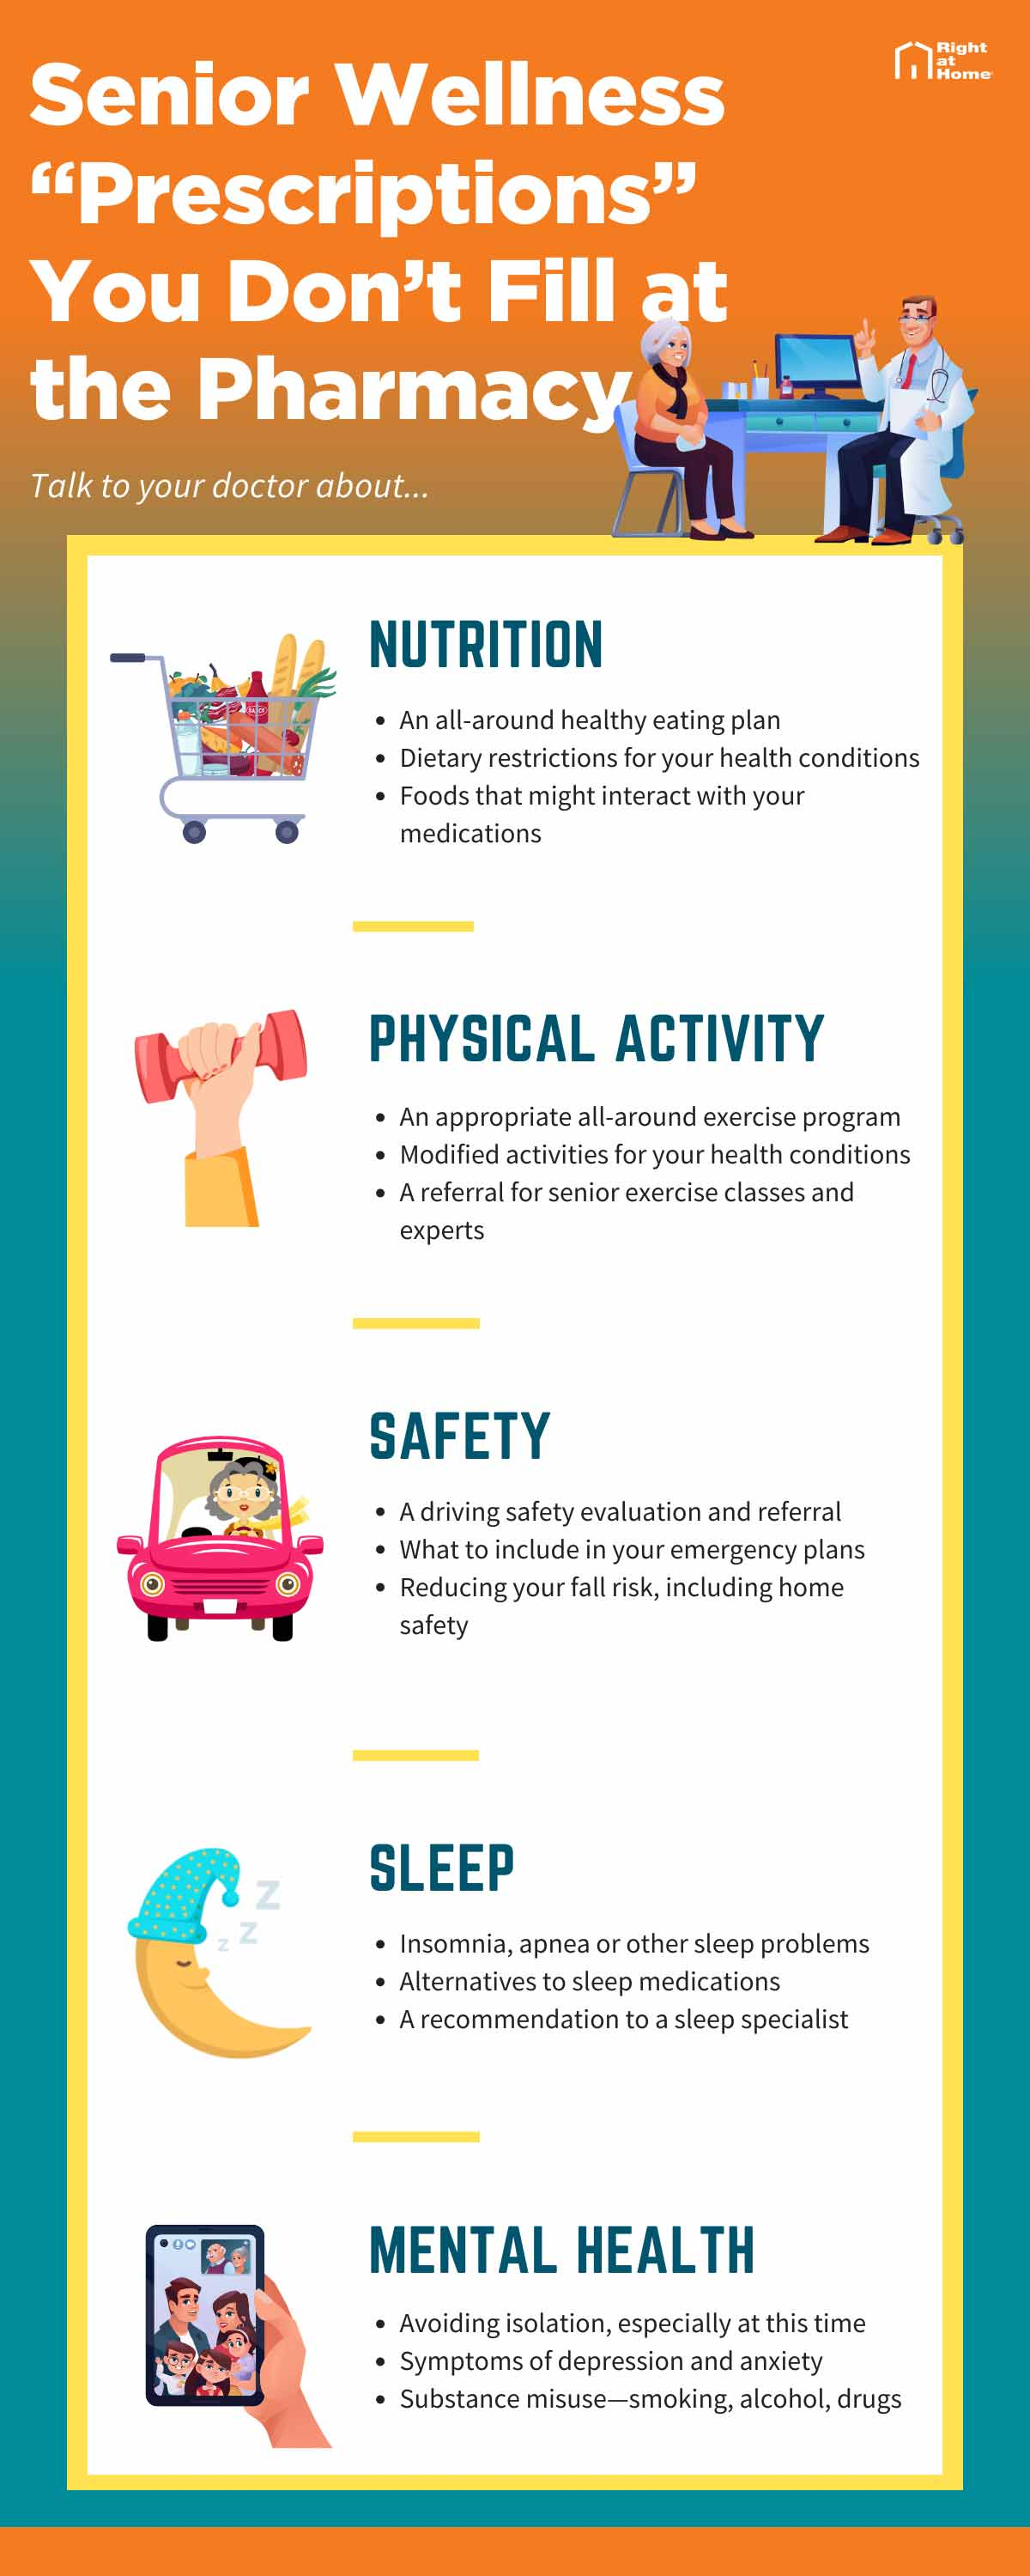 Senior-Wellness-Prescriptions-You-Don't-Fill-at-the-Pharmacy Infographic